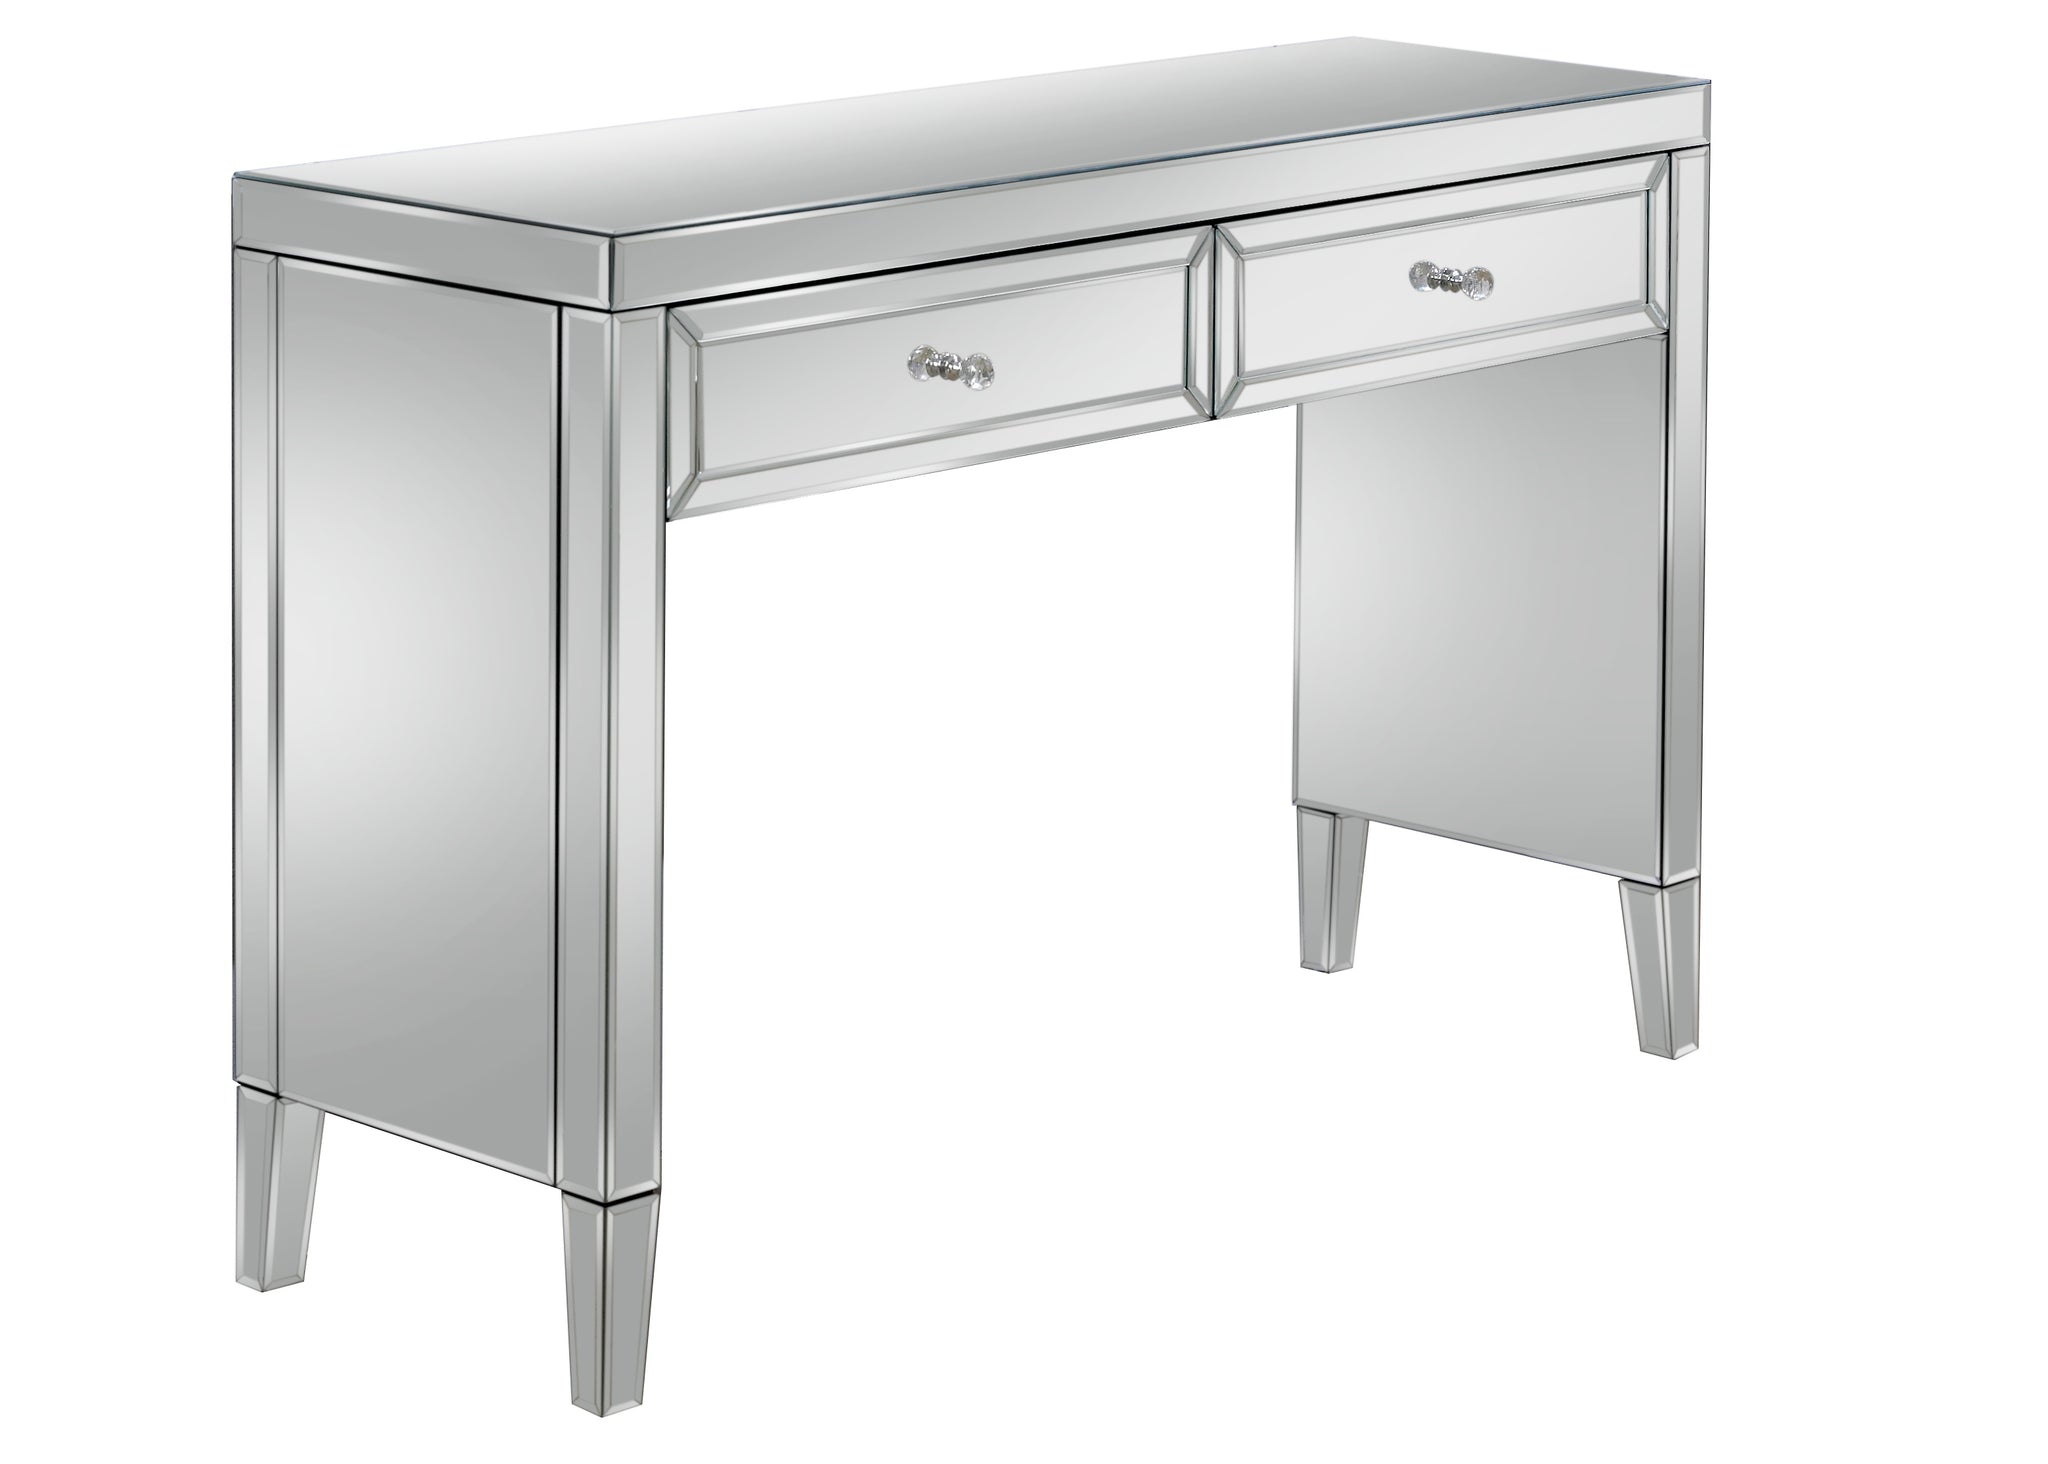 Turia 2 Drawer Sideboard